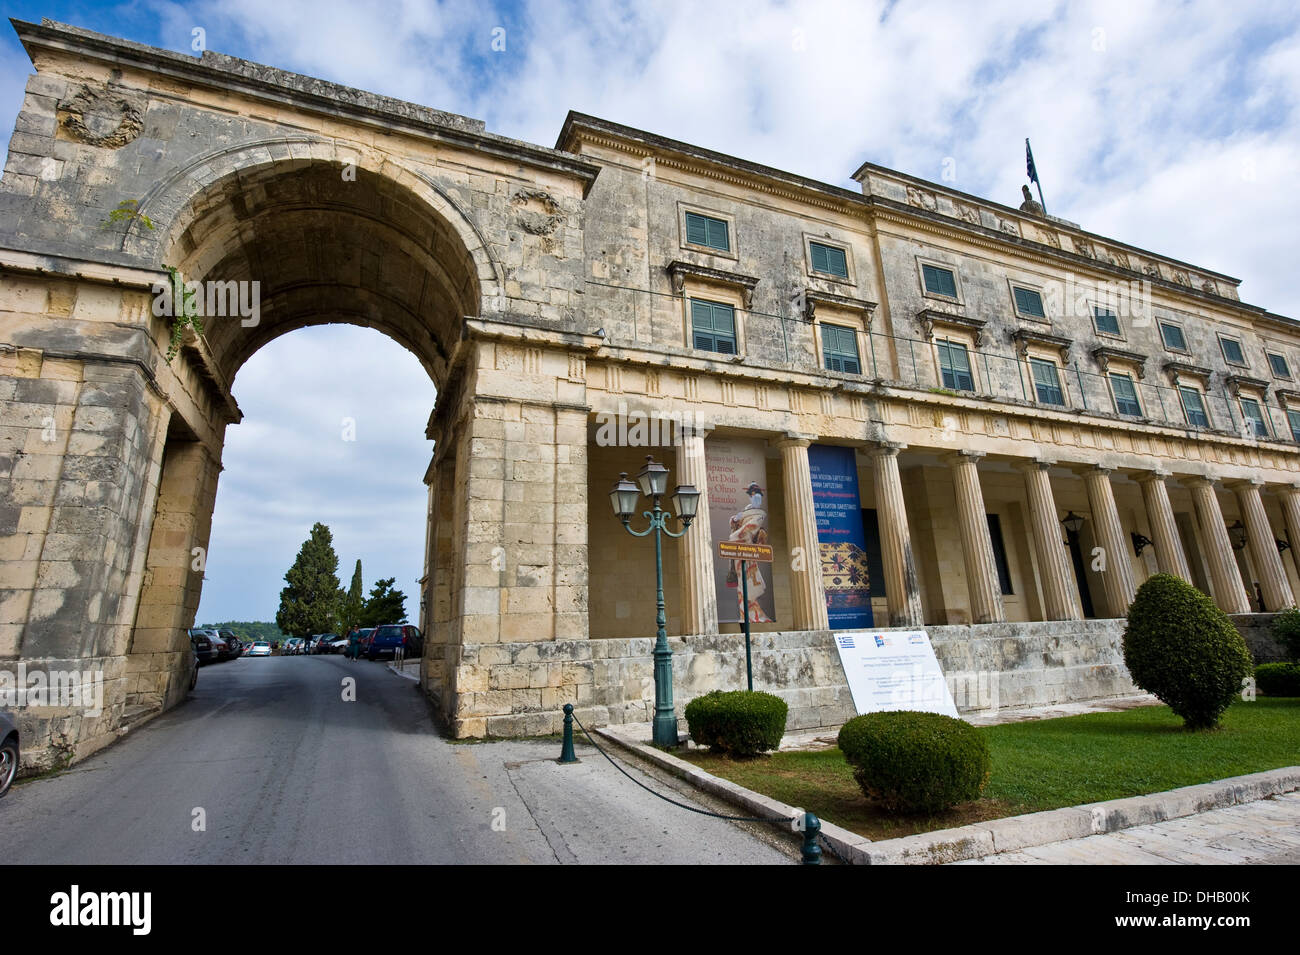 Museum of Asian art of Corfu located in the Palace of St. Michael and St. George in Corfu, Greece. - Stock Image